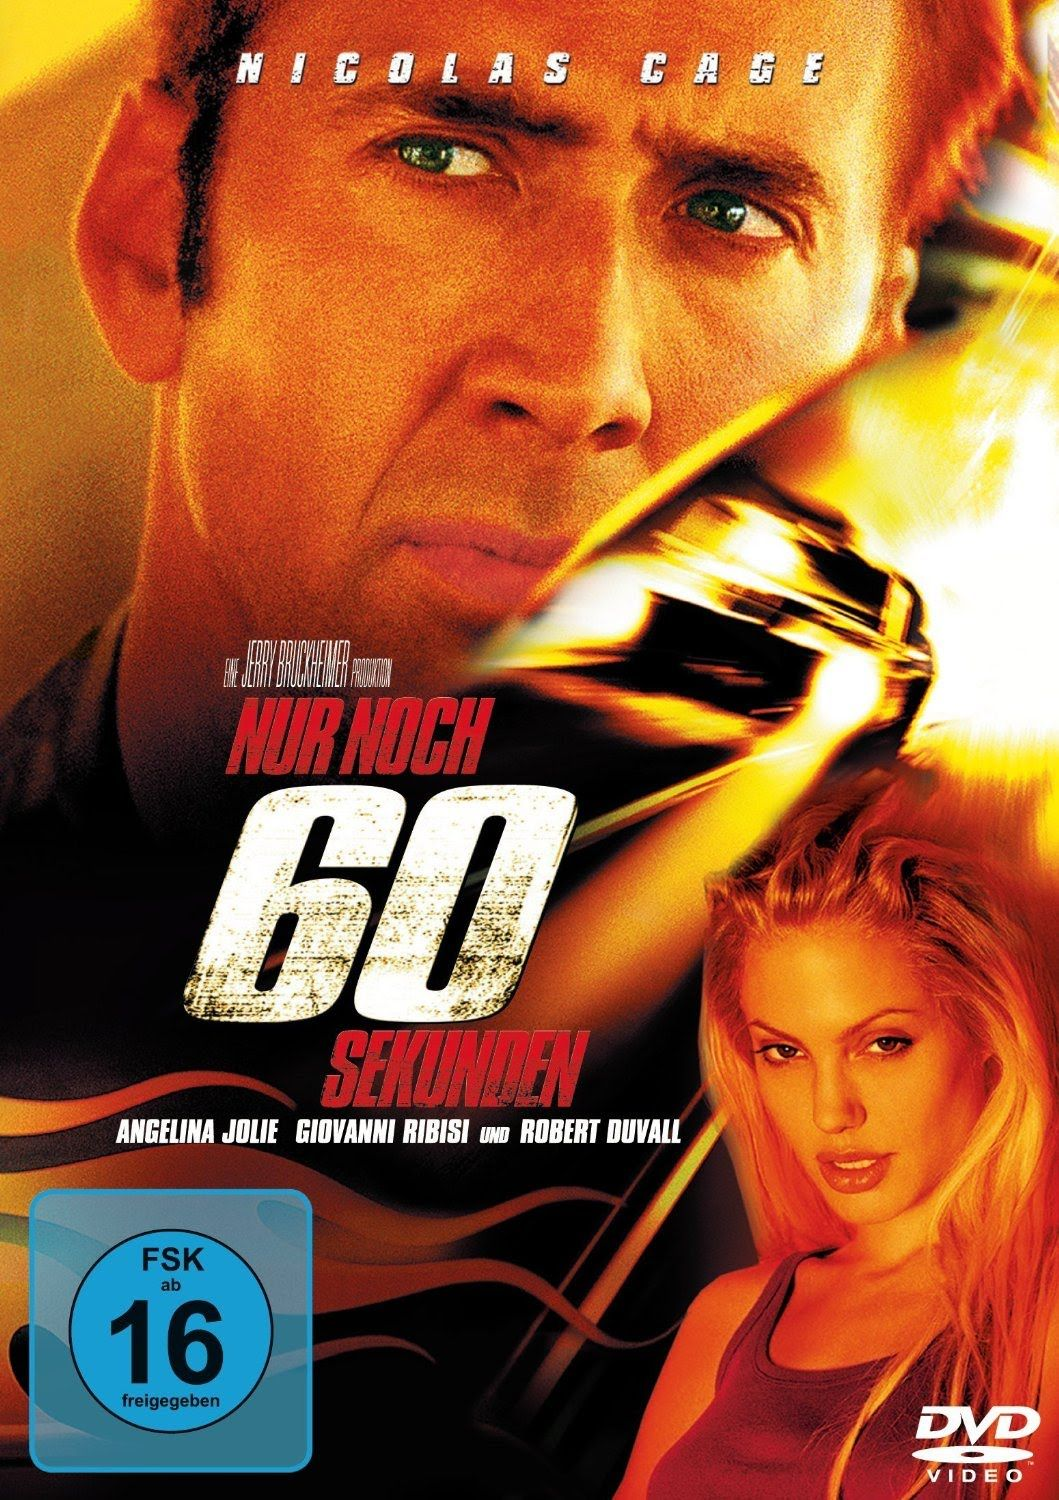 Gone in 60 Seconds 2000 Movie Full English Nicolas Cage